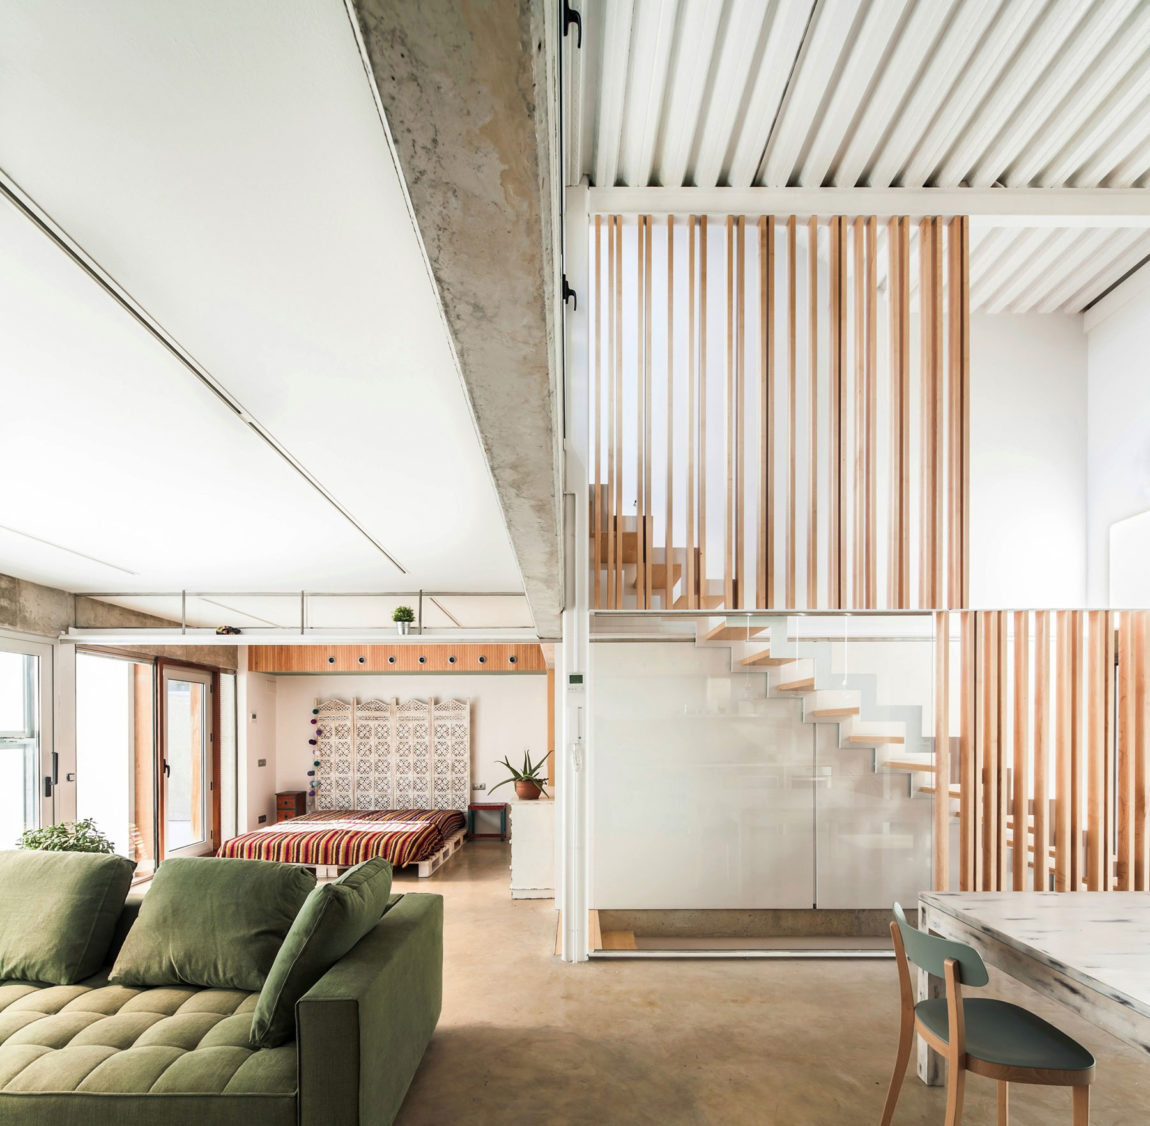 House Migdia by Sau Taller d'Arquitectura (6)